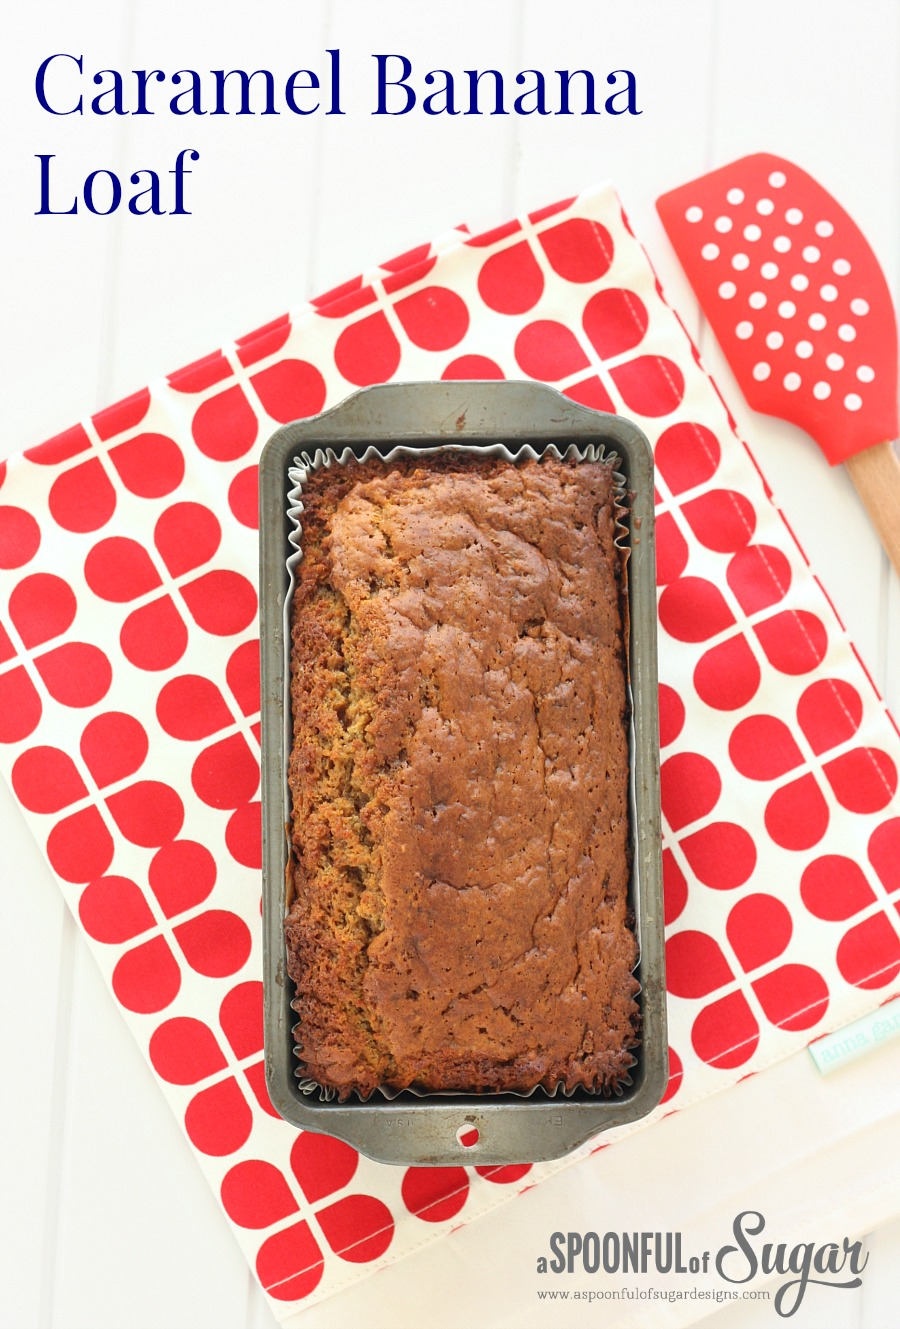 Caramel Banana Loaf recipe